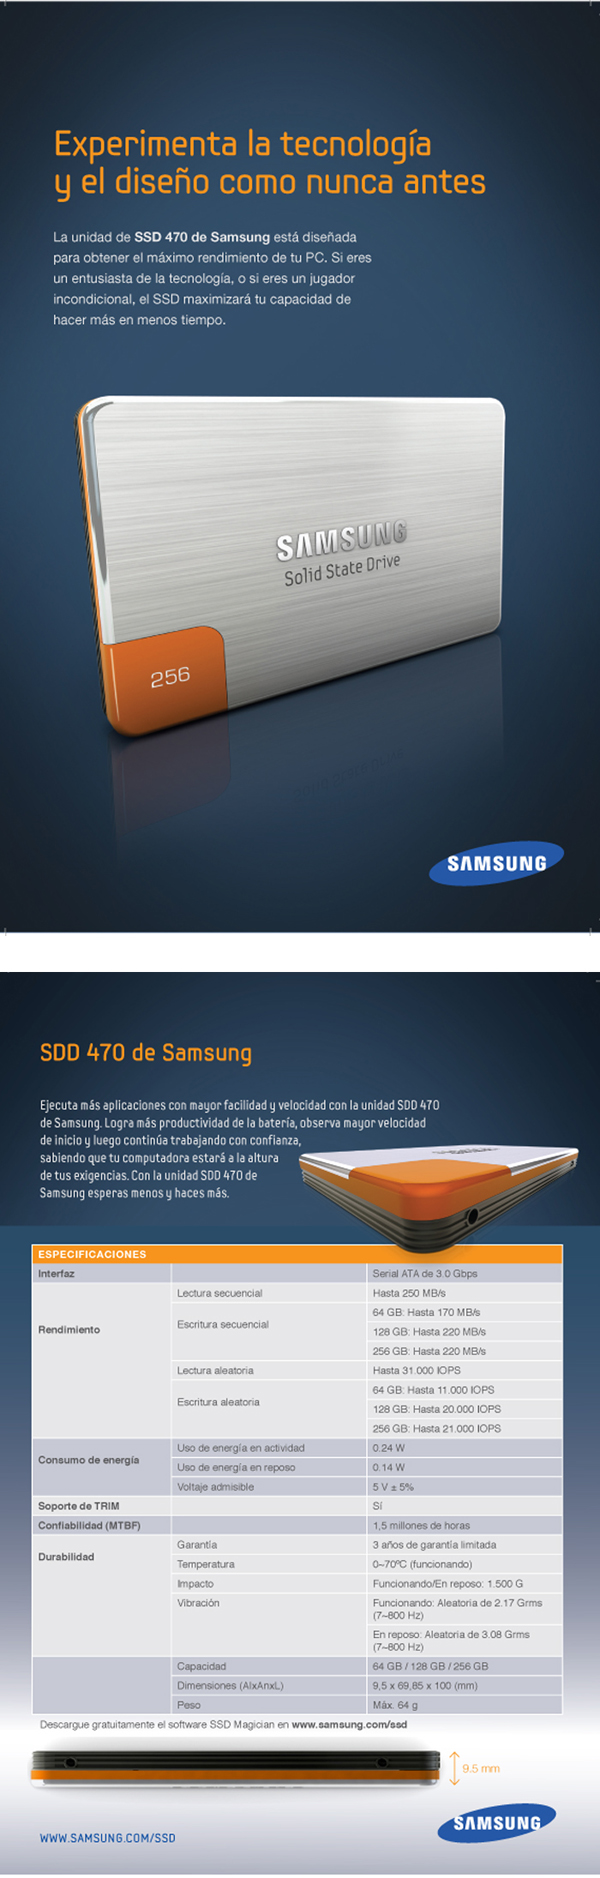 Samsung Experience Layout design, image retouching, pre-press